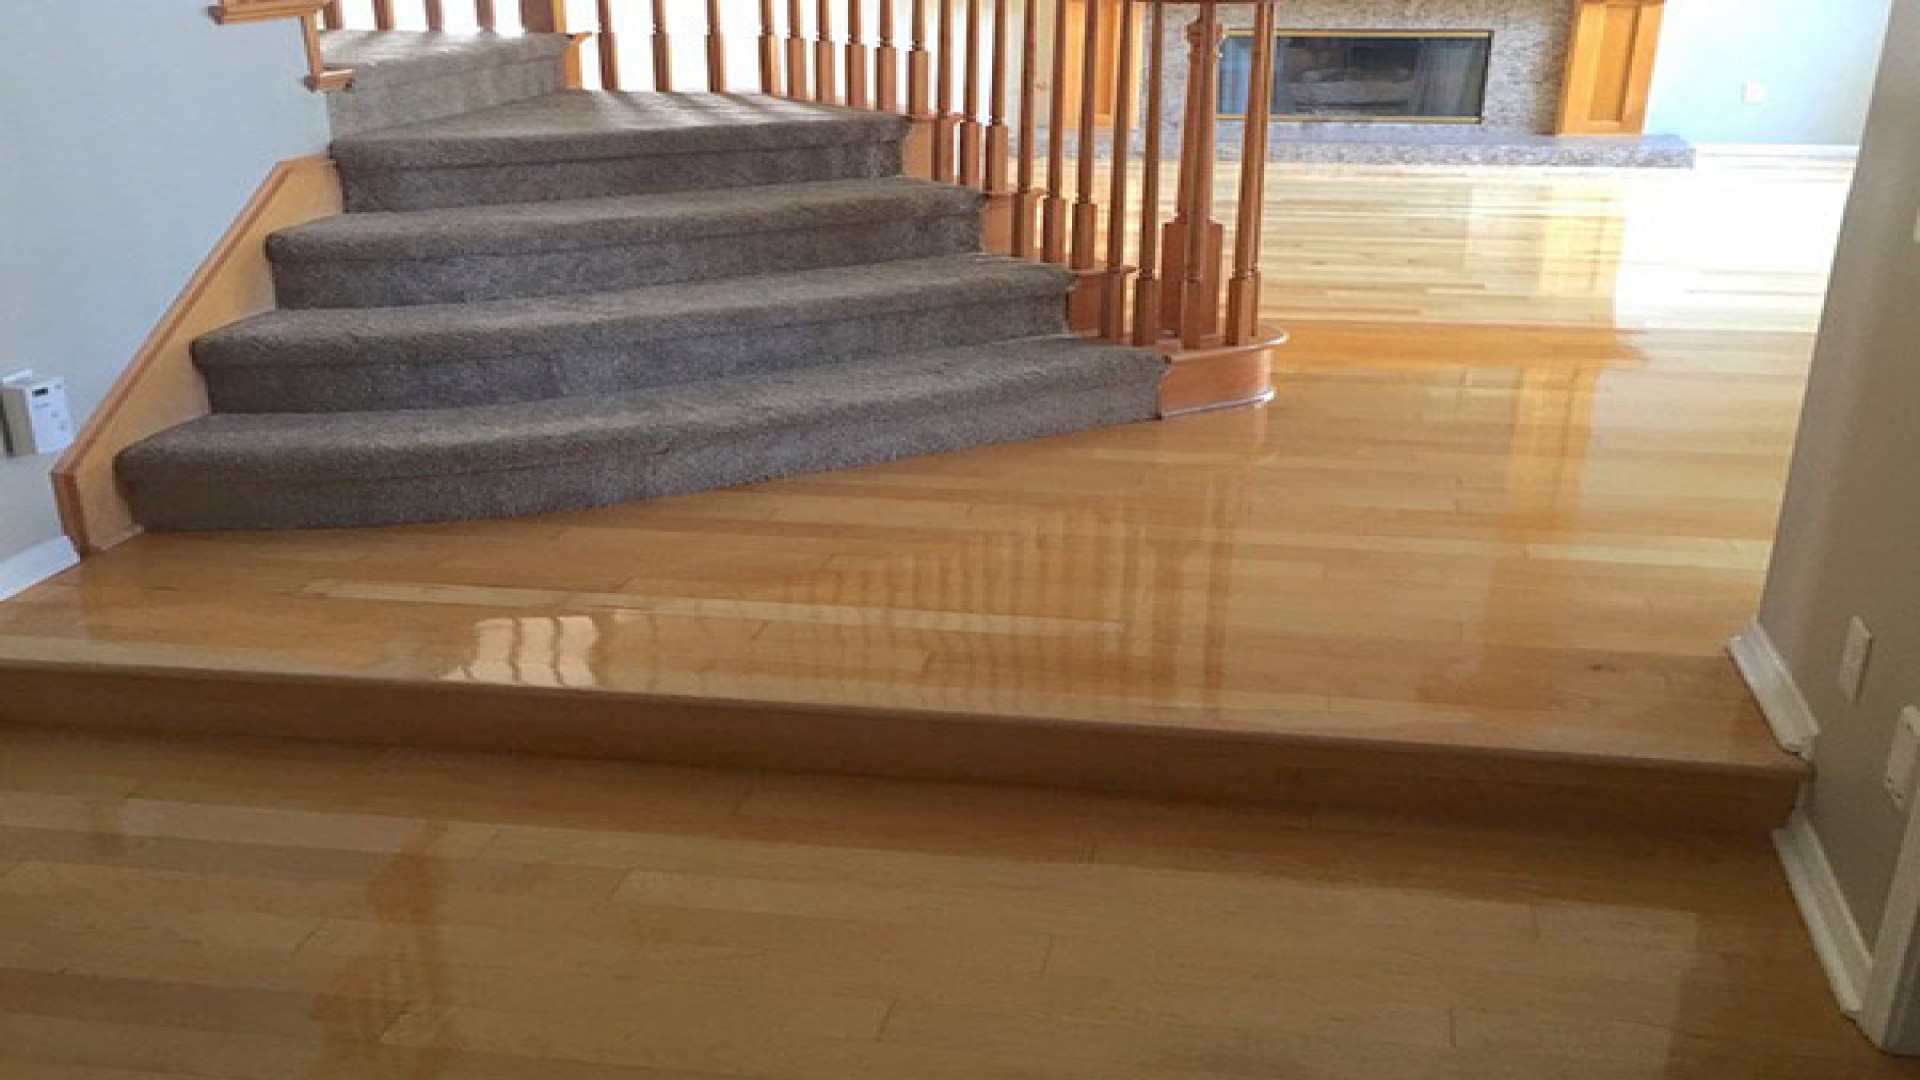 Hardwood Floor Installation Los Angeles Of Hardwood Floor Refinishing Richmond Va Kentwood Acacia Natural In Hardwood Floor Refinishing Richmond Va Hardwood Floor Refinishing Los Angeles Elegant Repairs Refinishing